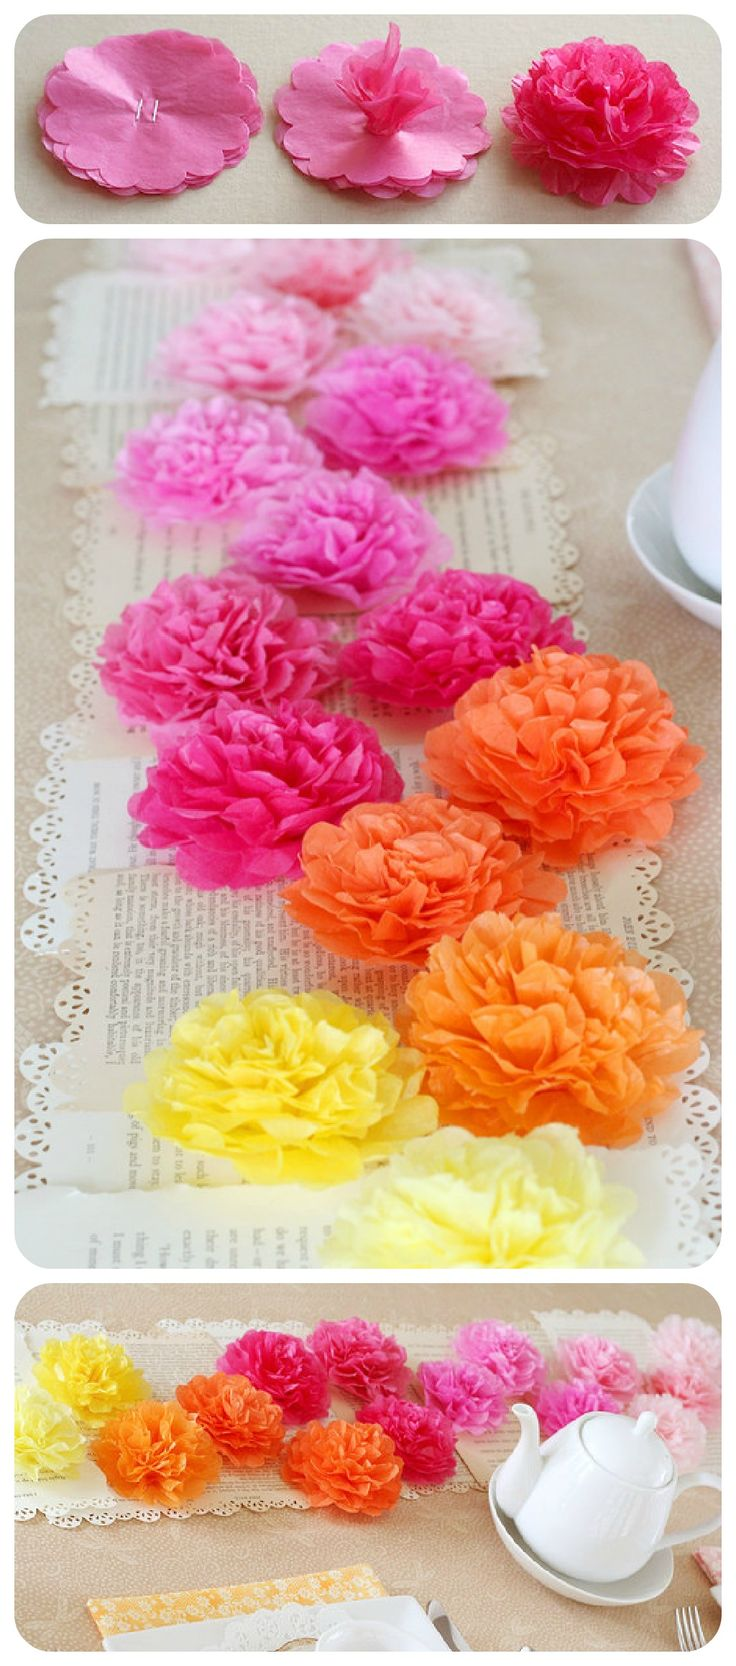 Tissue Paper Flower Runner: Use around 8 sheets of tissue paper for each flower and punched all 8 layers at once. Staple together your stack of flowers (3.5 inch size). Scrunch up your first flower layer to the center. Repeat with each layer and then fluff back out to form flower. Adhere the flowers to a base of book pages border punched down each side to add to the elegant feel. Be sure to adhere both the pages and flowers altogether.